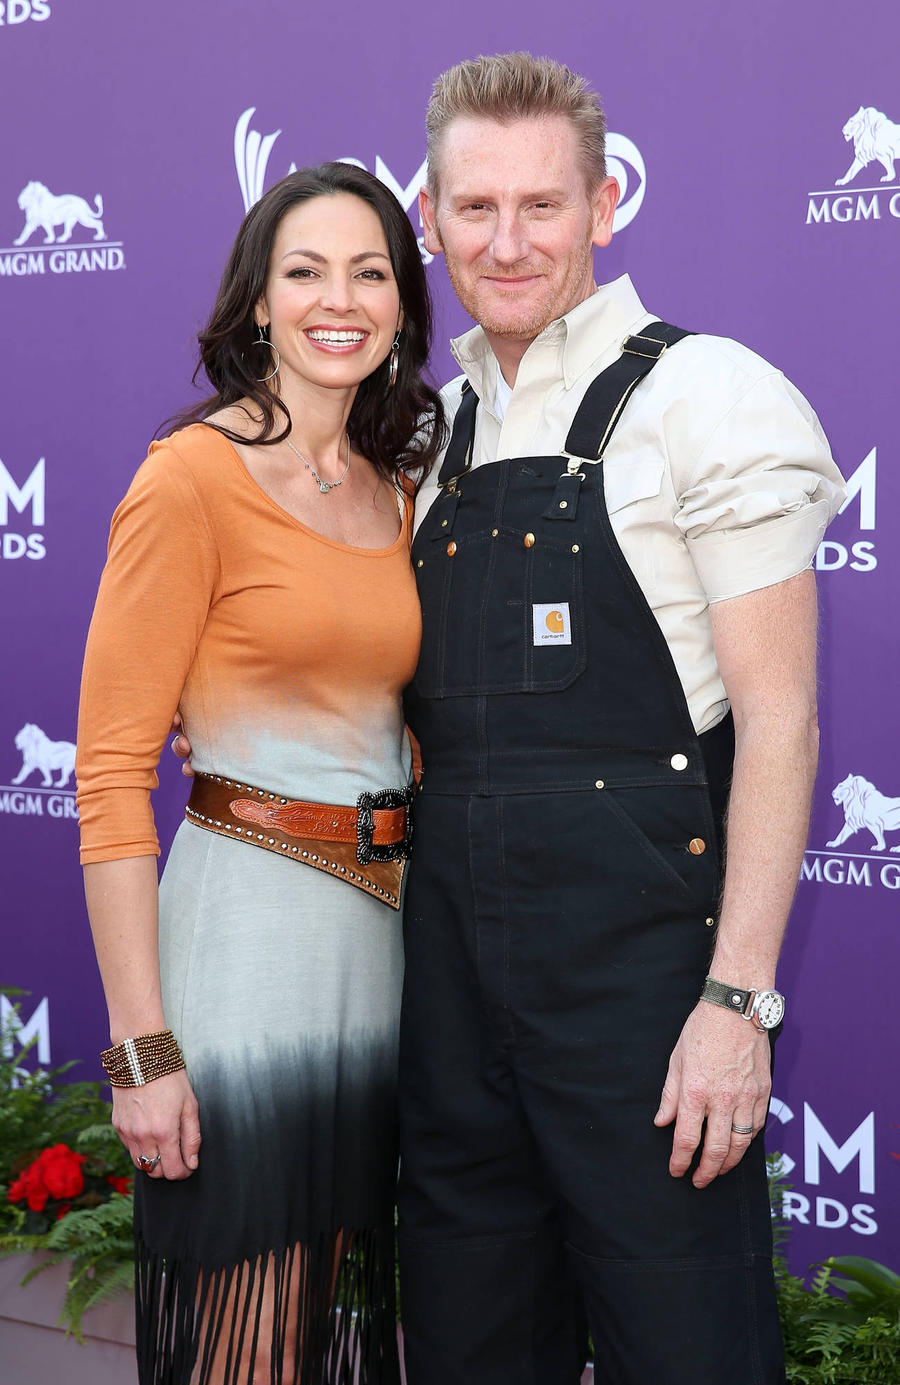 Joey Feek's Final Years To Be Featured In Documentary